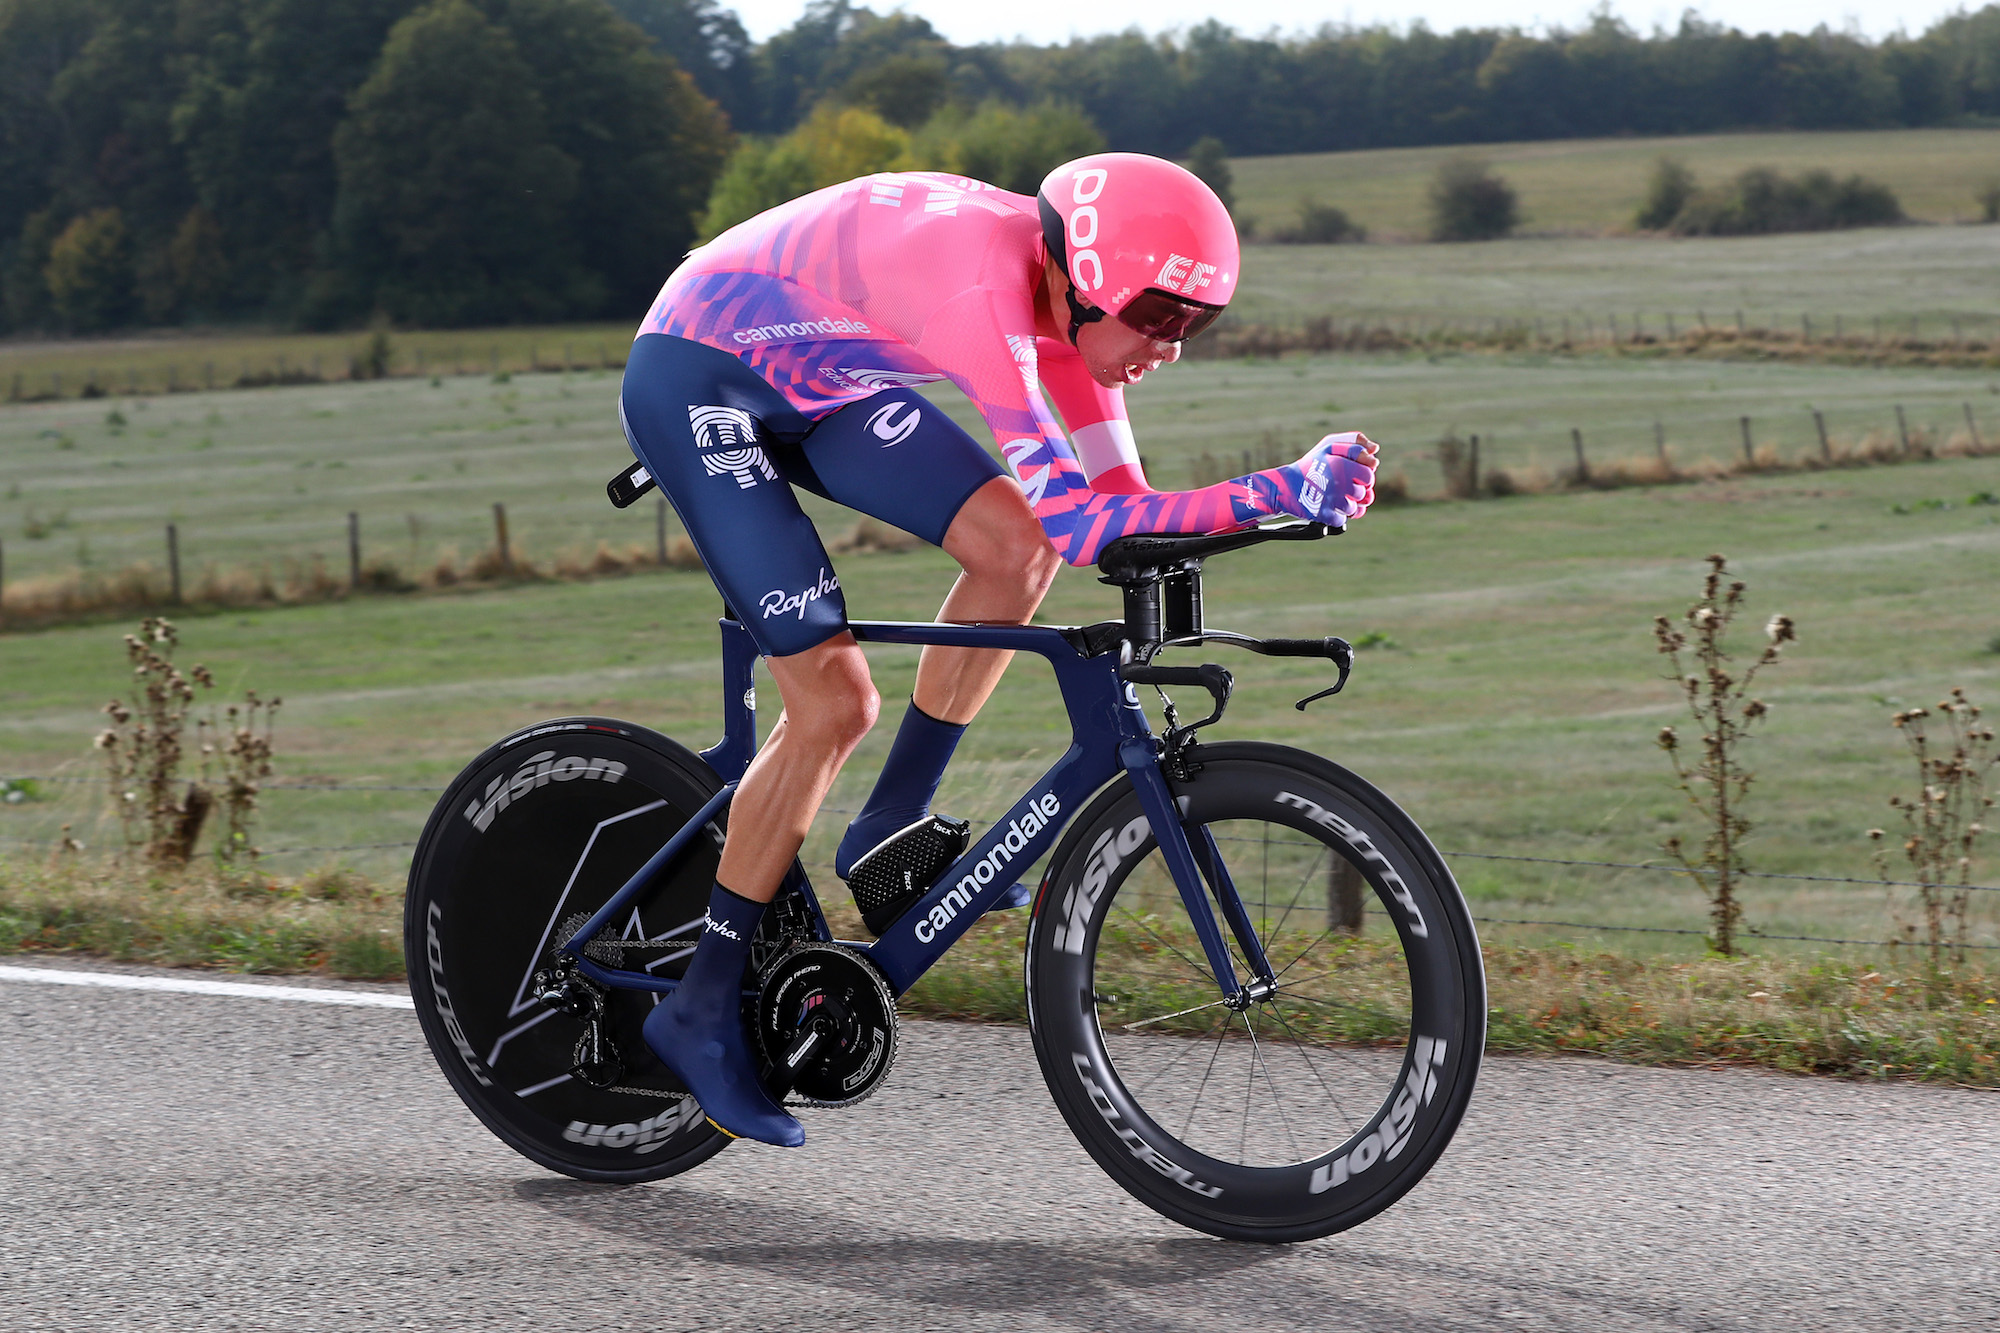 Vuelta a España 2020: Rider start times for the crucial stage 13 time trial - Cycling Weekly